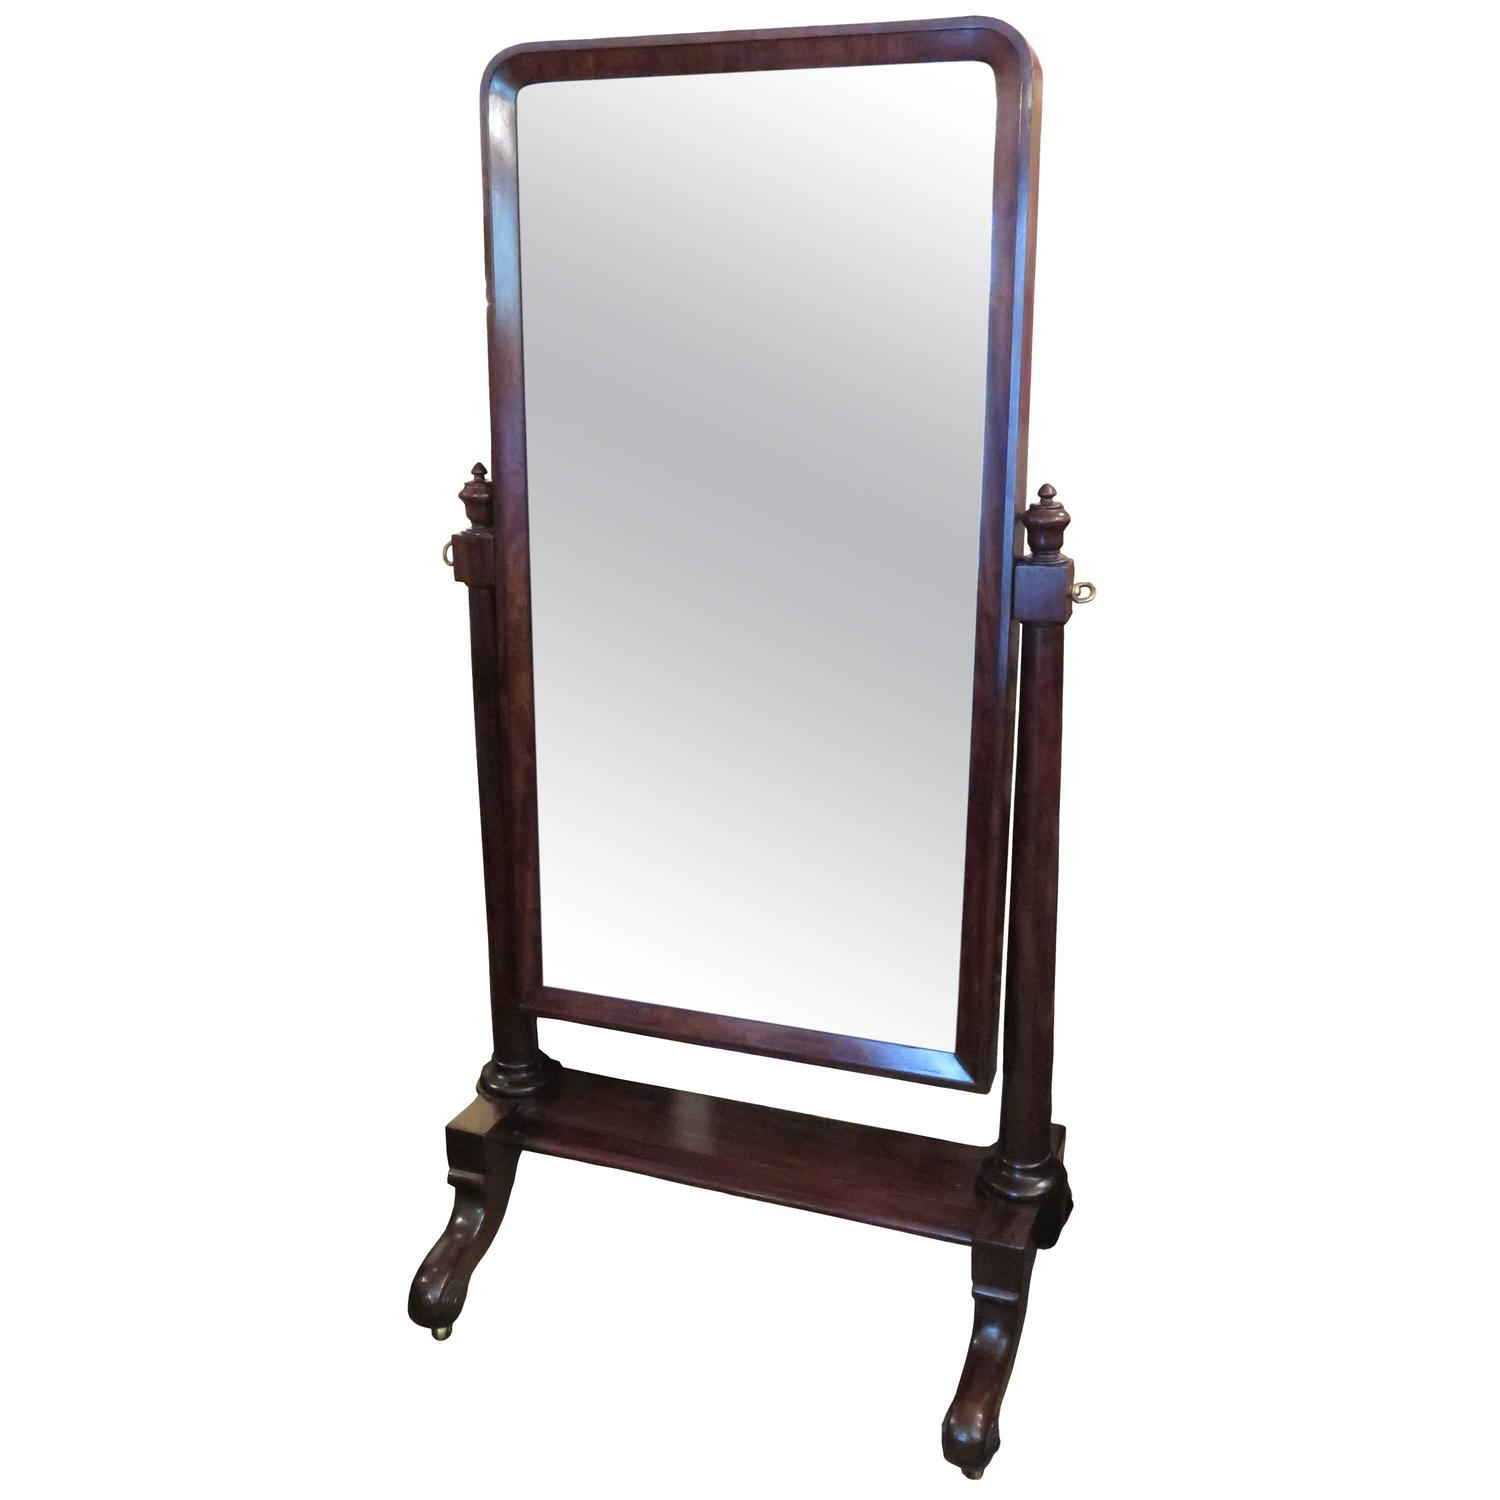 French cheval mirror for sale at 1stdibs for Floor mirrors for sale